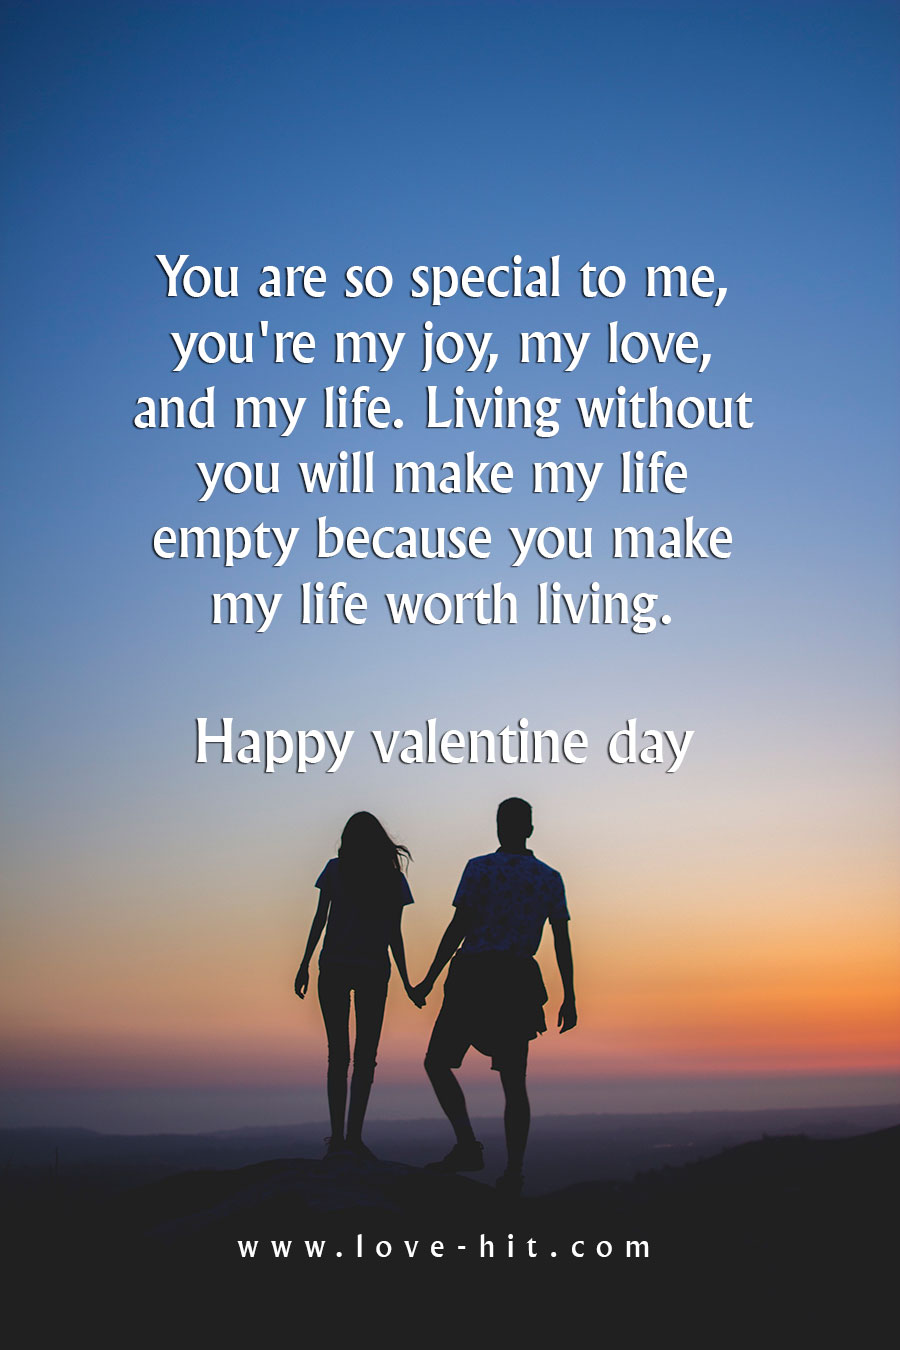 You are so special to me, you're my joy, my love, and my life. Living without you will make my life empty because you make my life worth living.